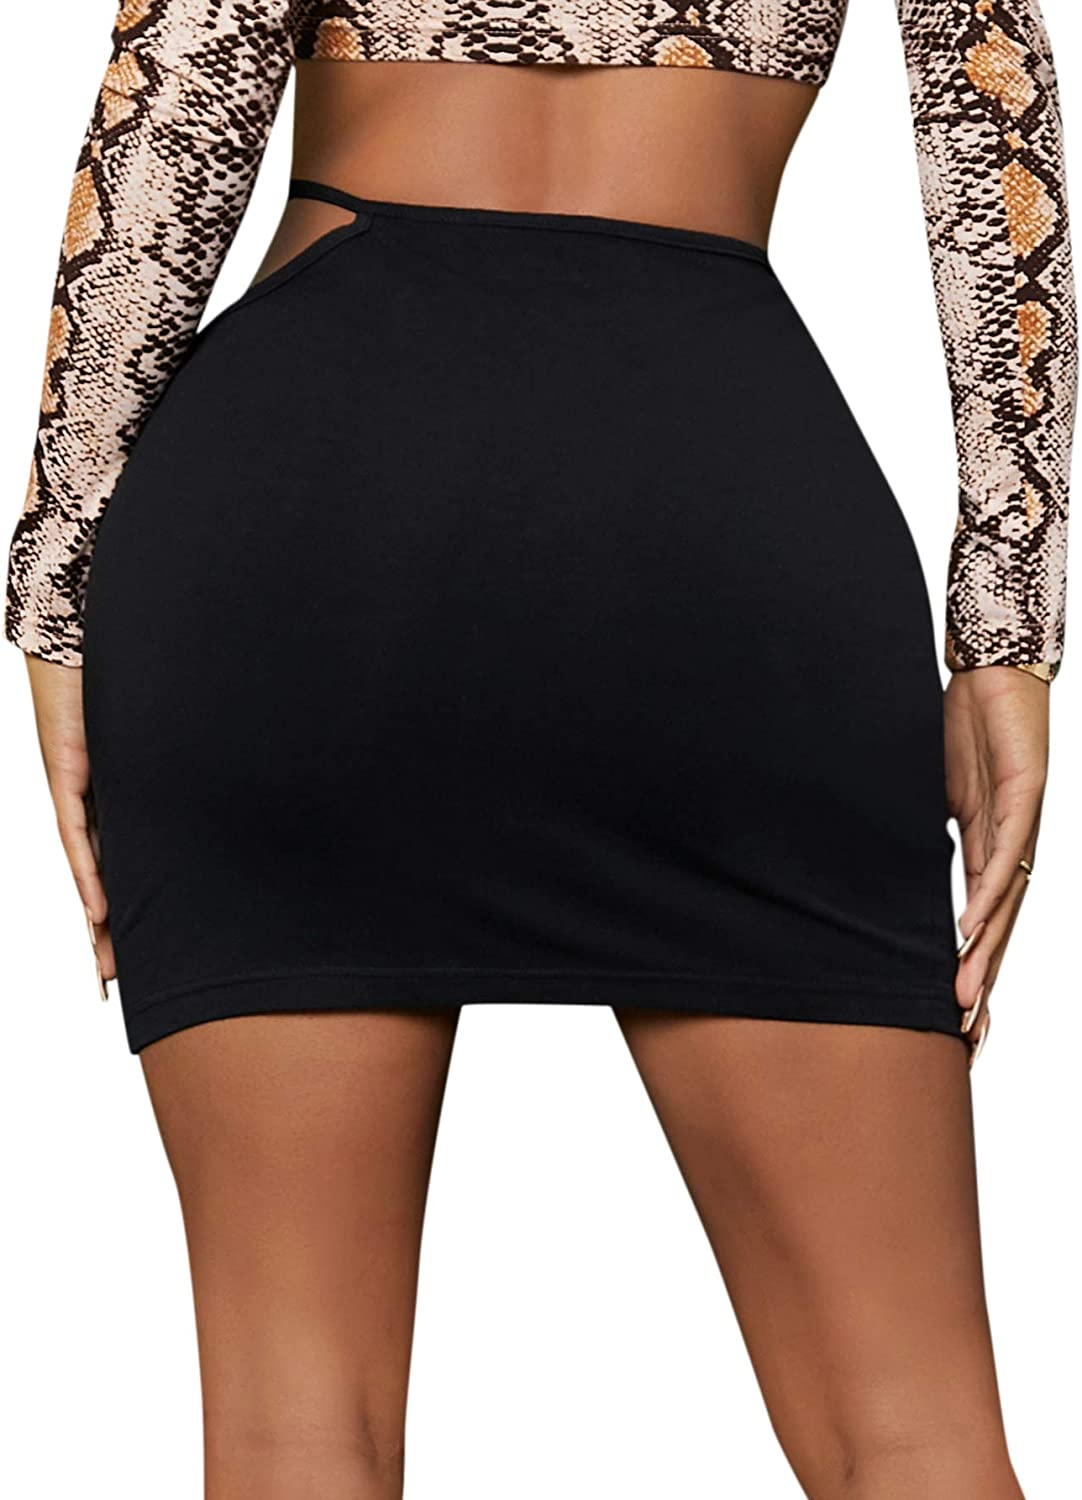 SheIn Women's Cut Out High Waist Ruched Solid Bodycon Pencil Short Skirt